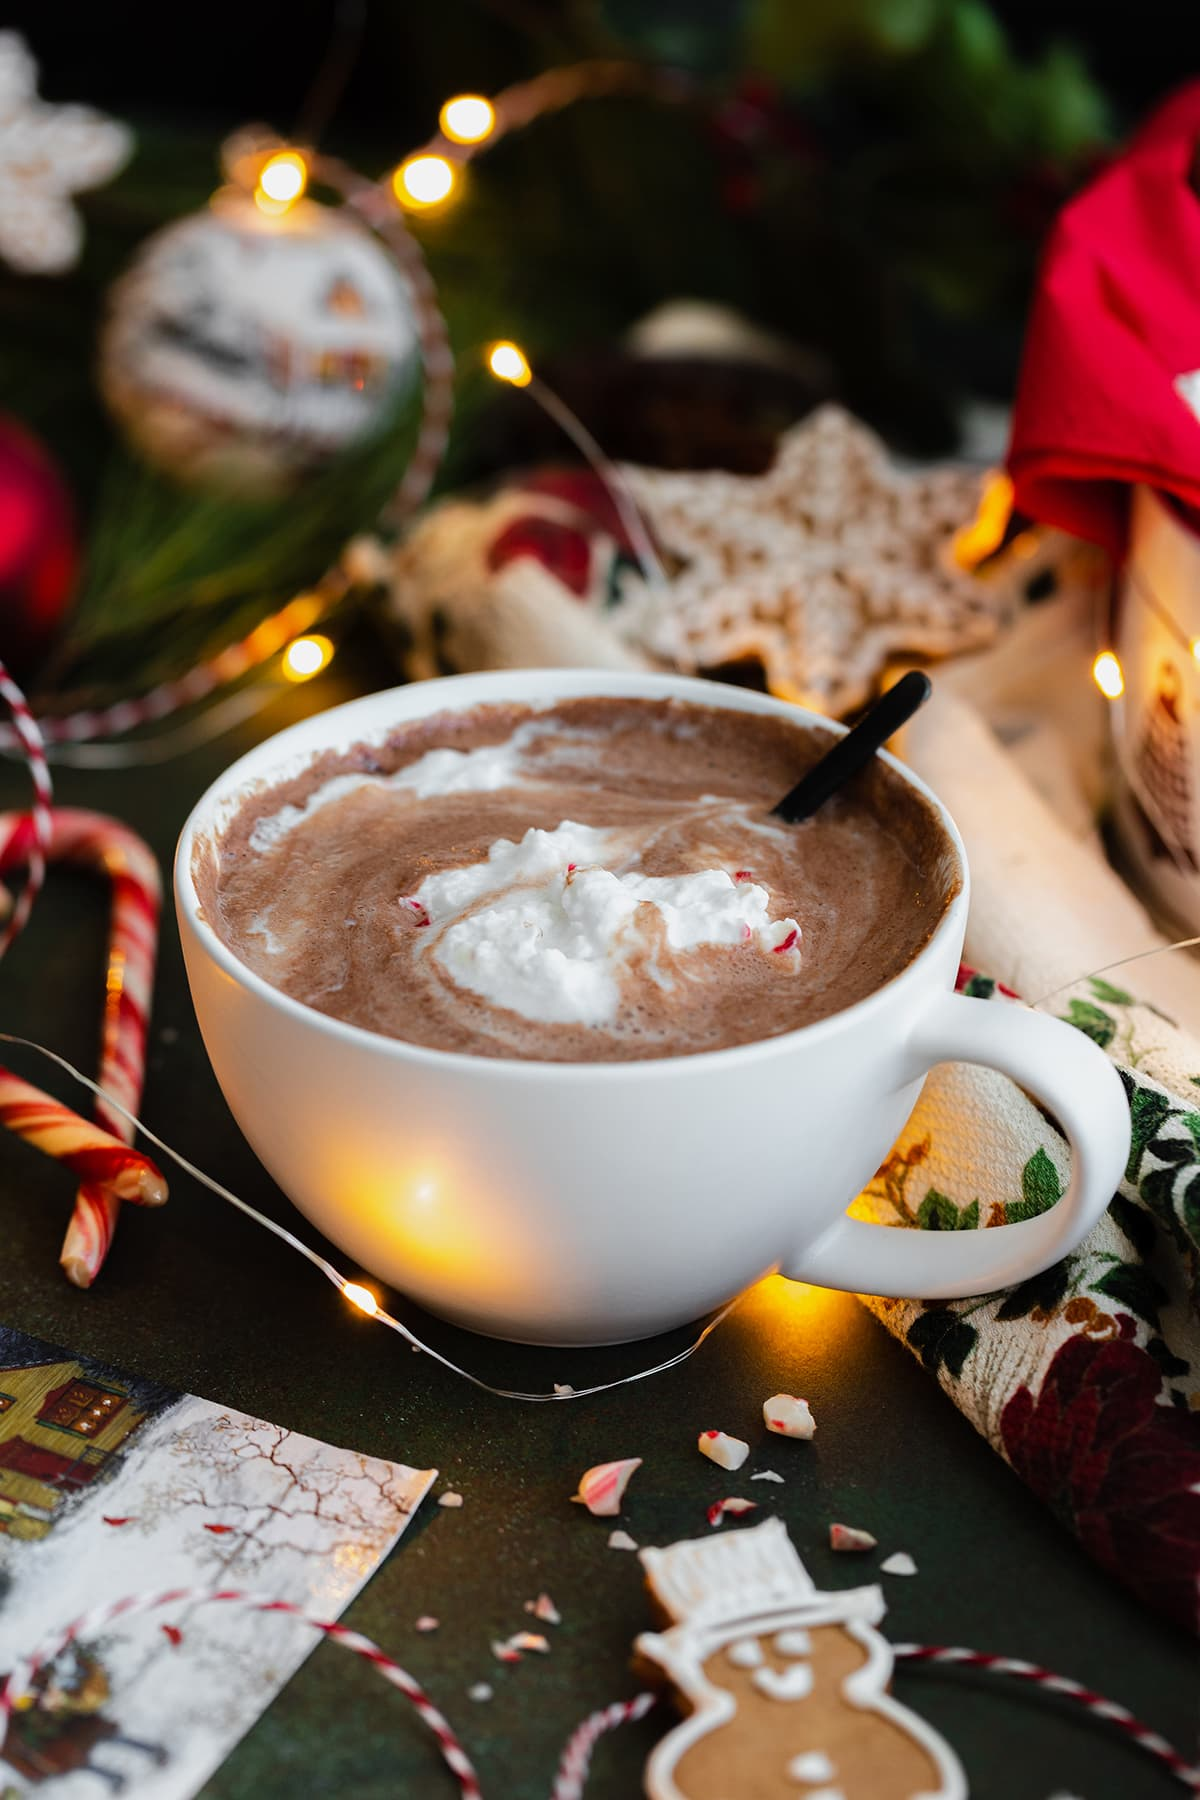 Half drunk cup of Peppermint hot chocolate